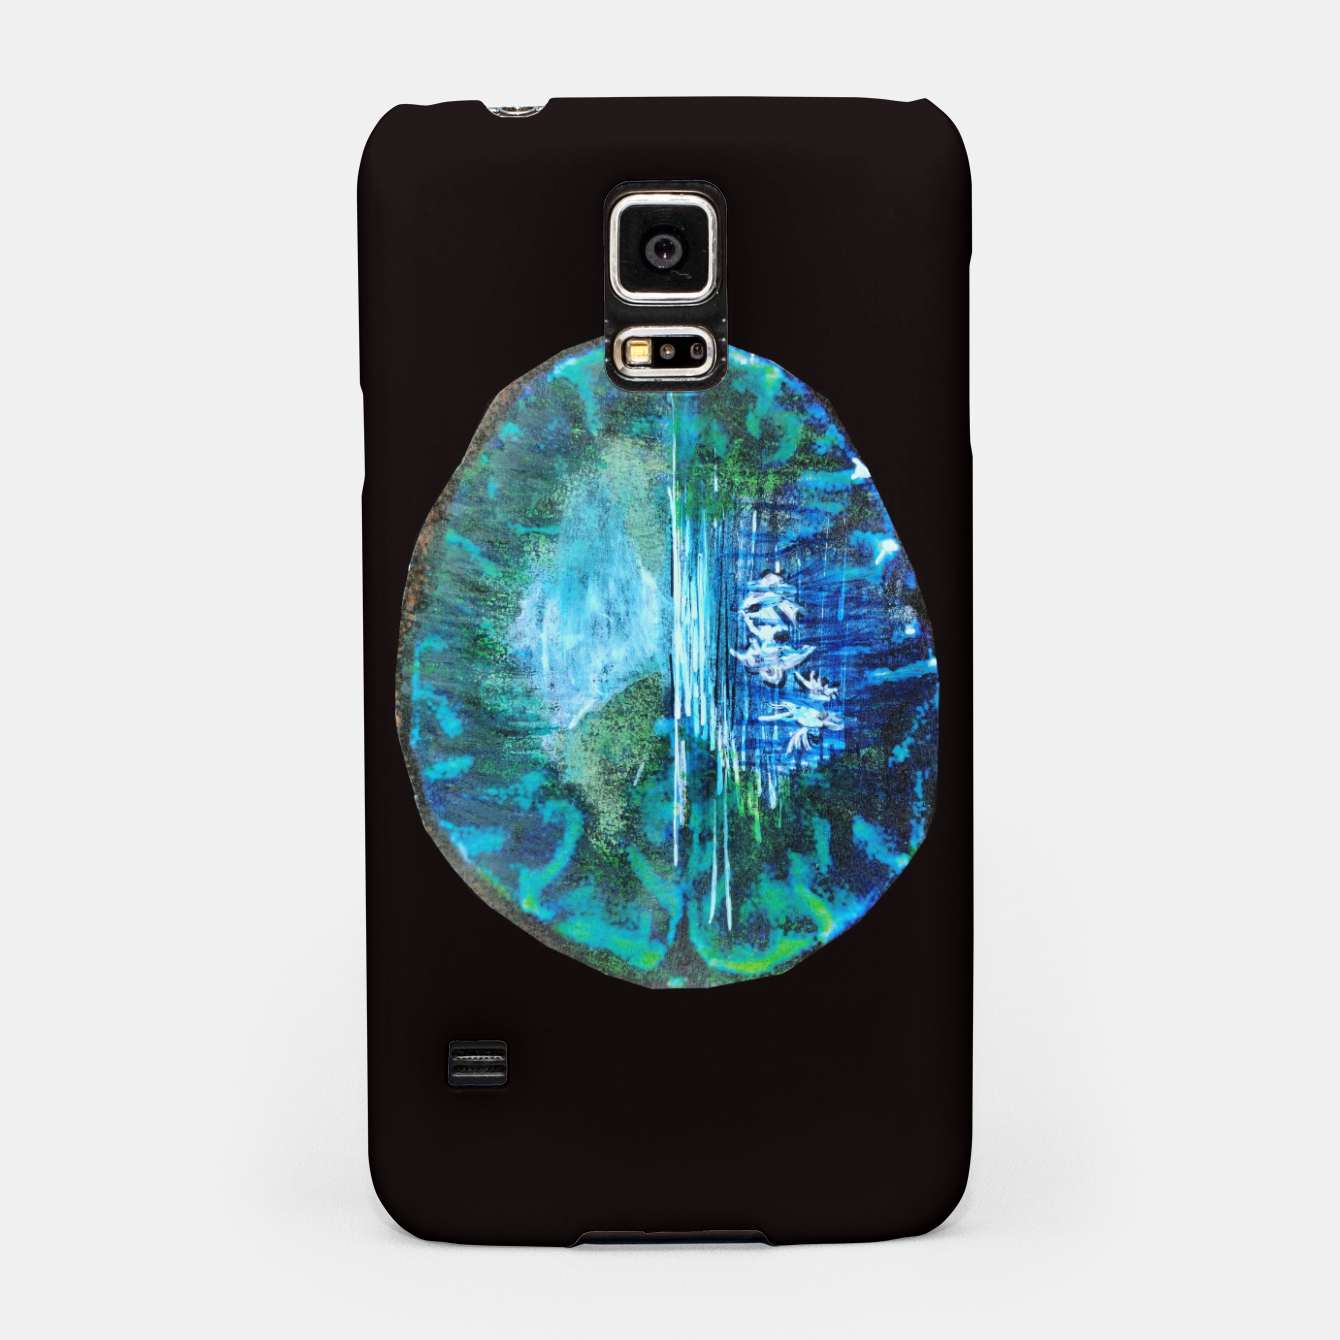 Image of lost and found world brain art for paratissima 19 Yulia A Korneva mri immage Samsung Case - Live Heroes